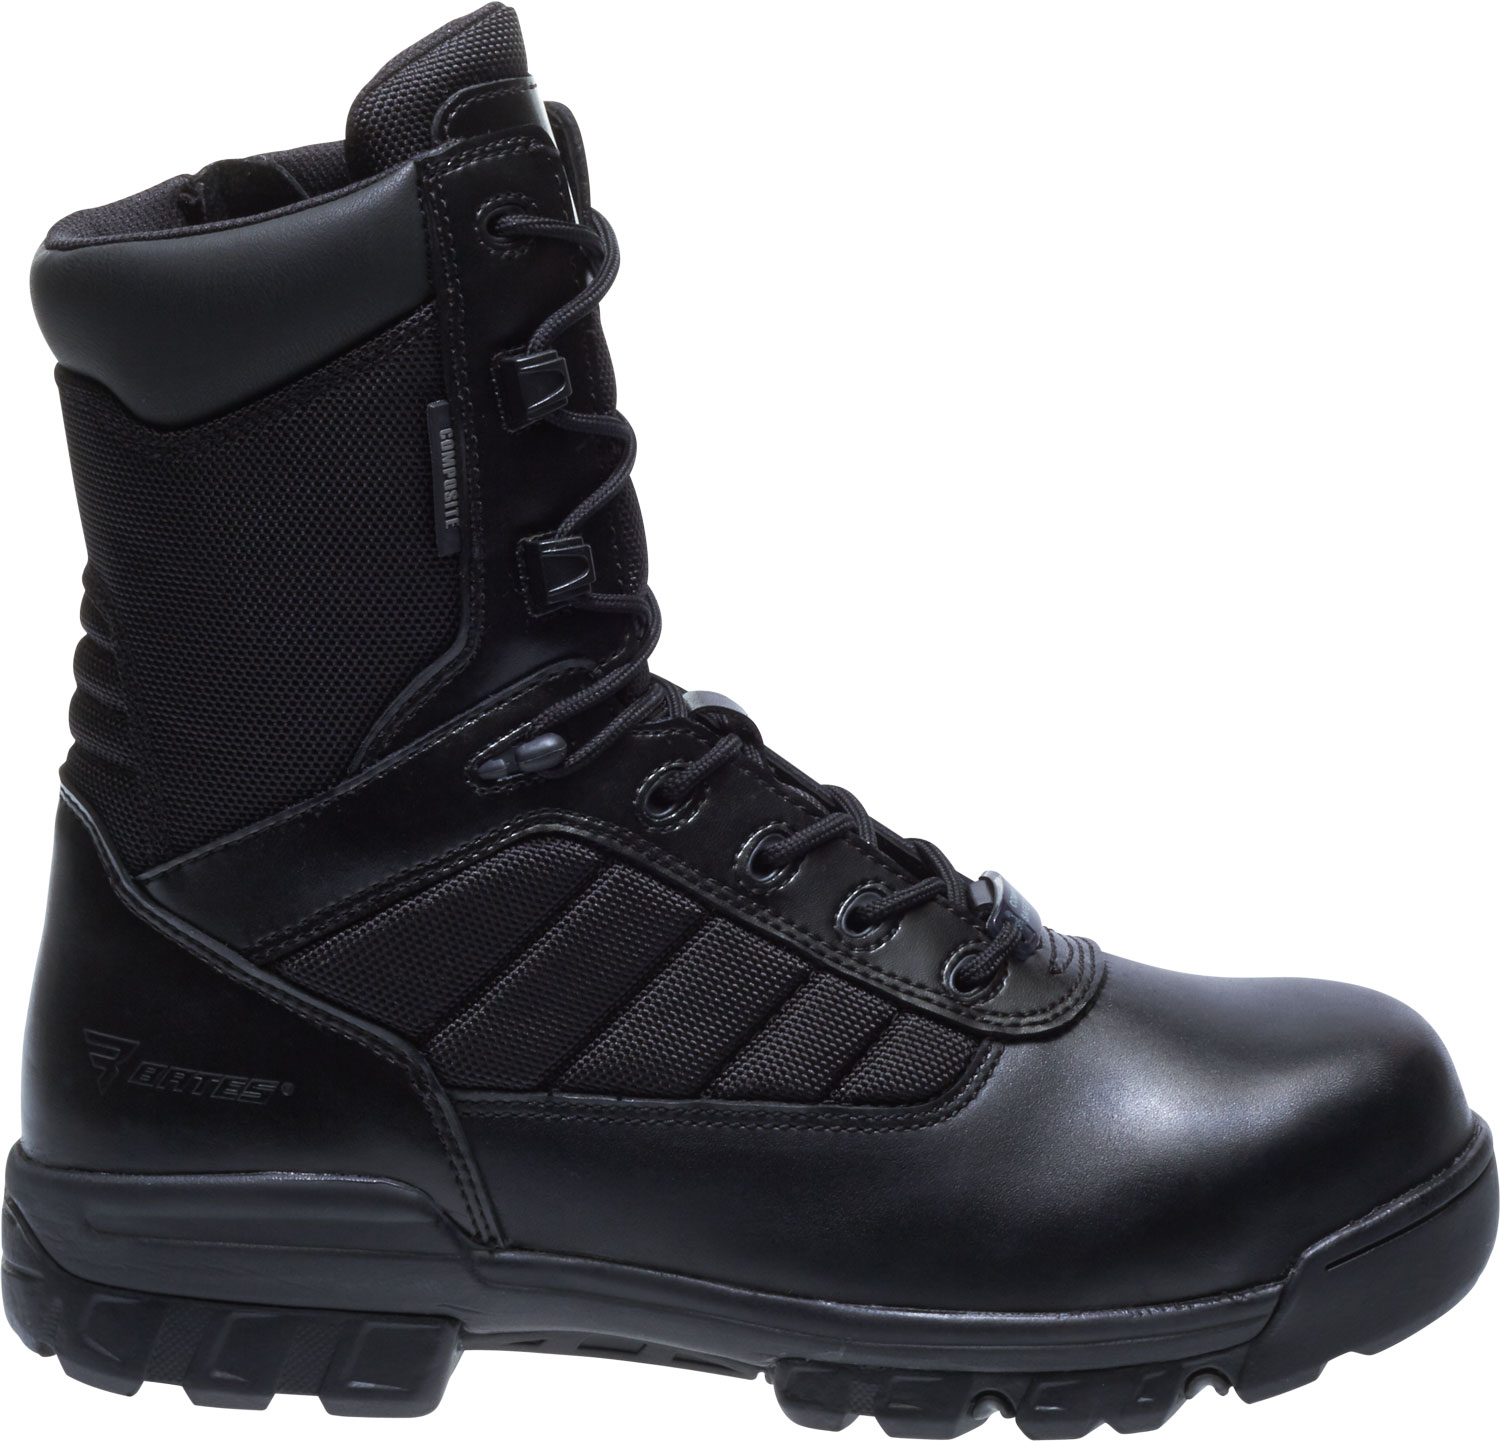 7333c0b4343 Safgard :: Work Boots, Safety Shoes, Steel Toe, Waterproof, Safety ...